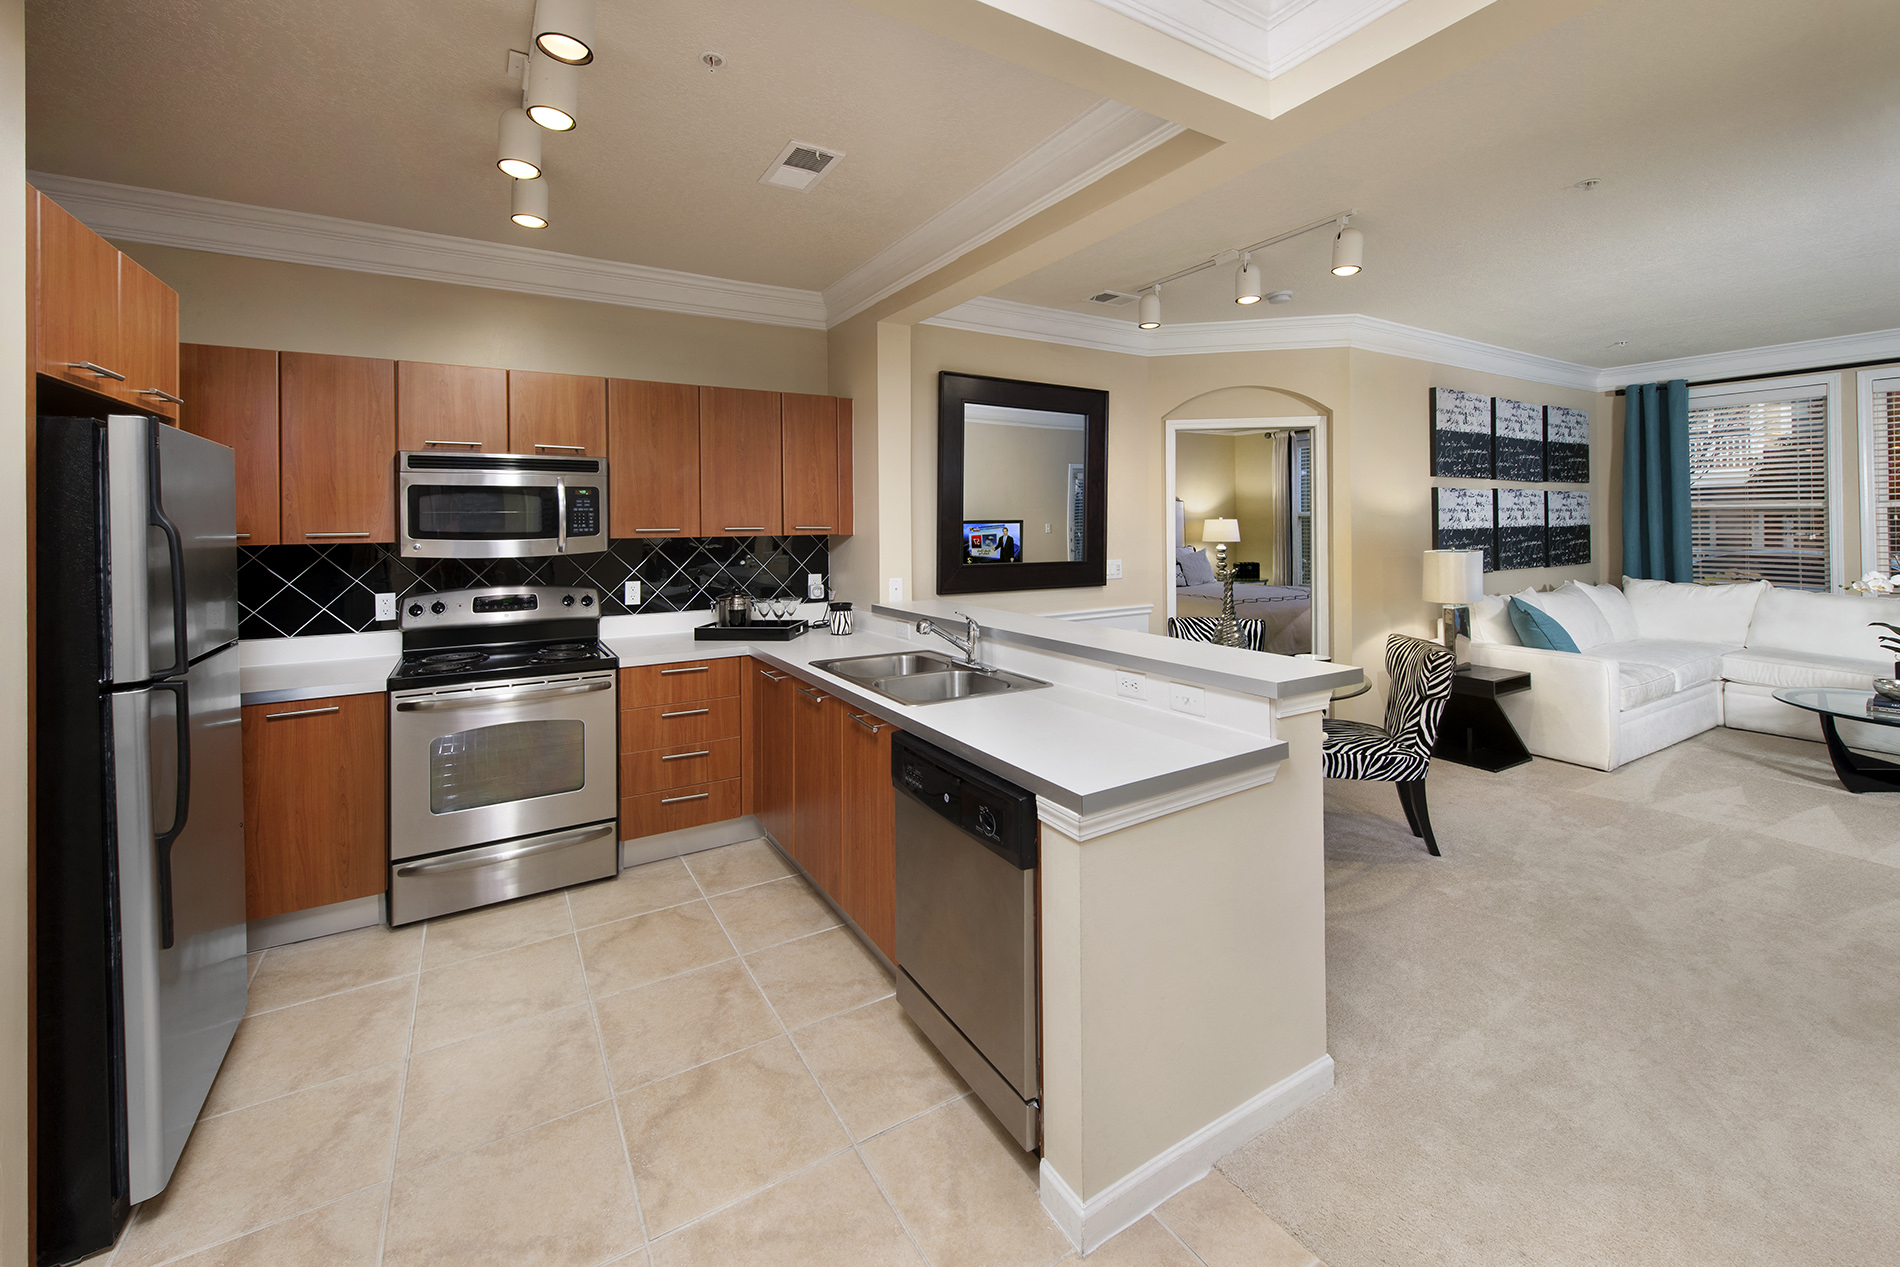 Fully Equipped Kitchen At Windsor At Contee Crossing 7810 Contee Road Laurel